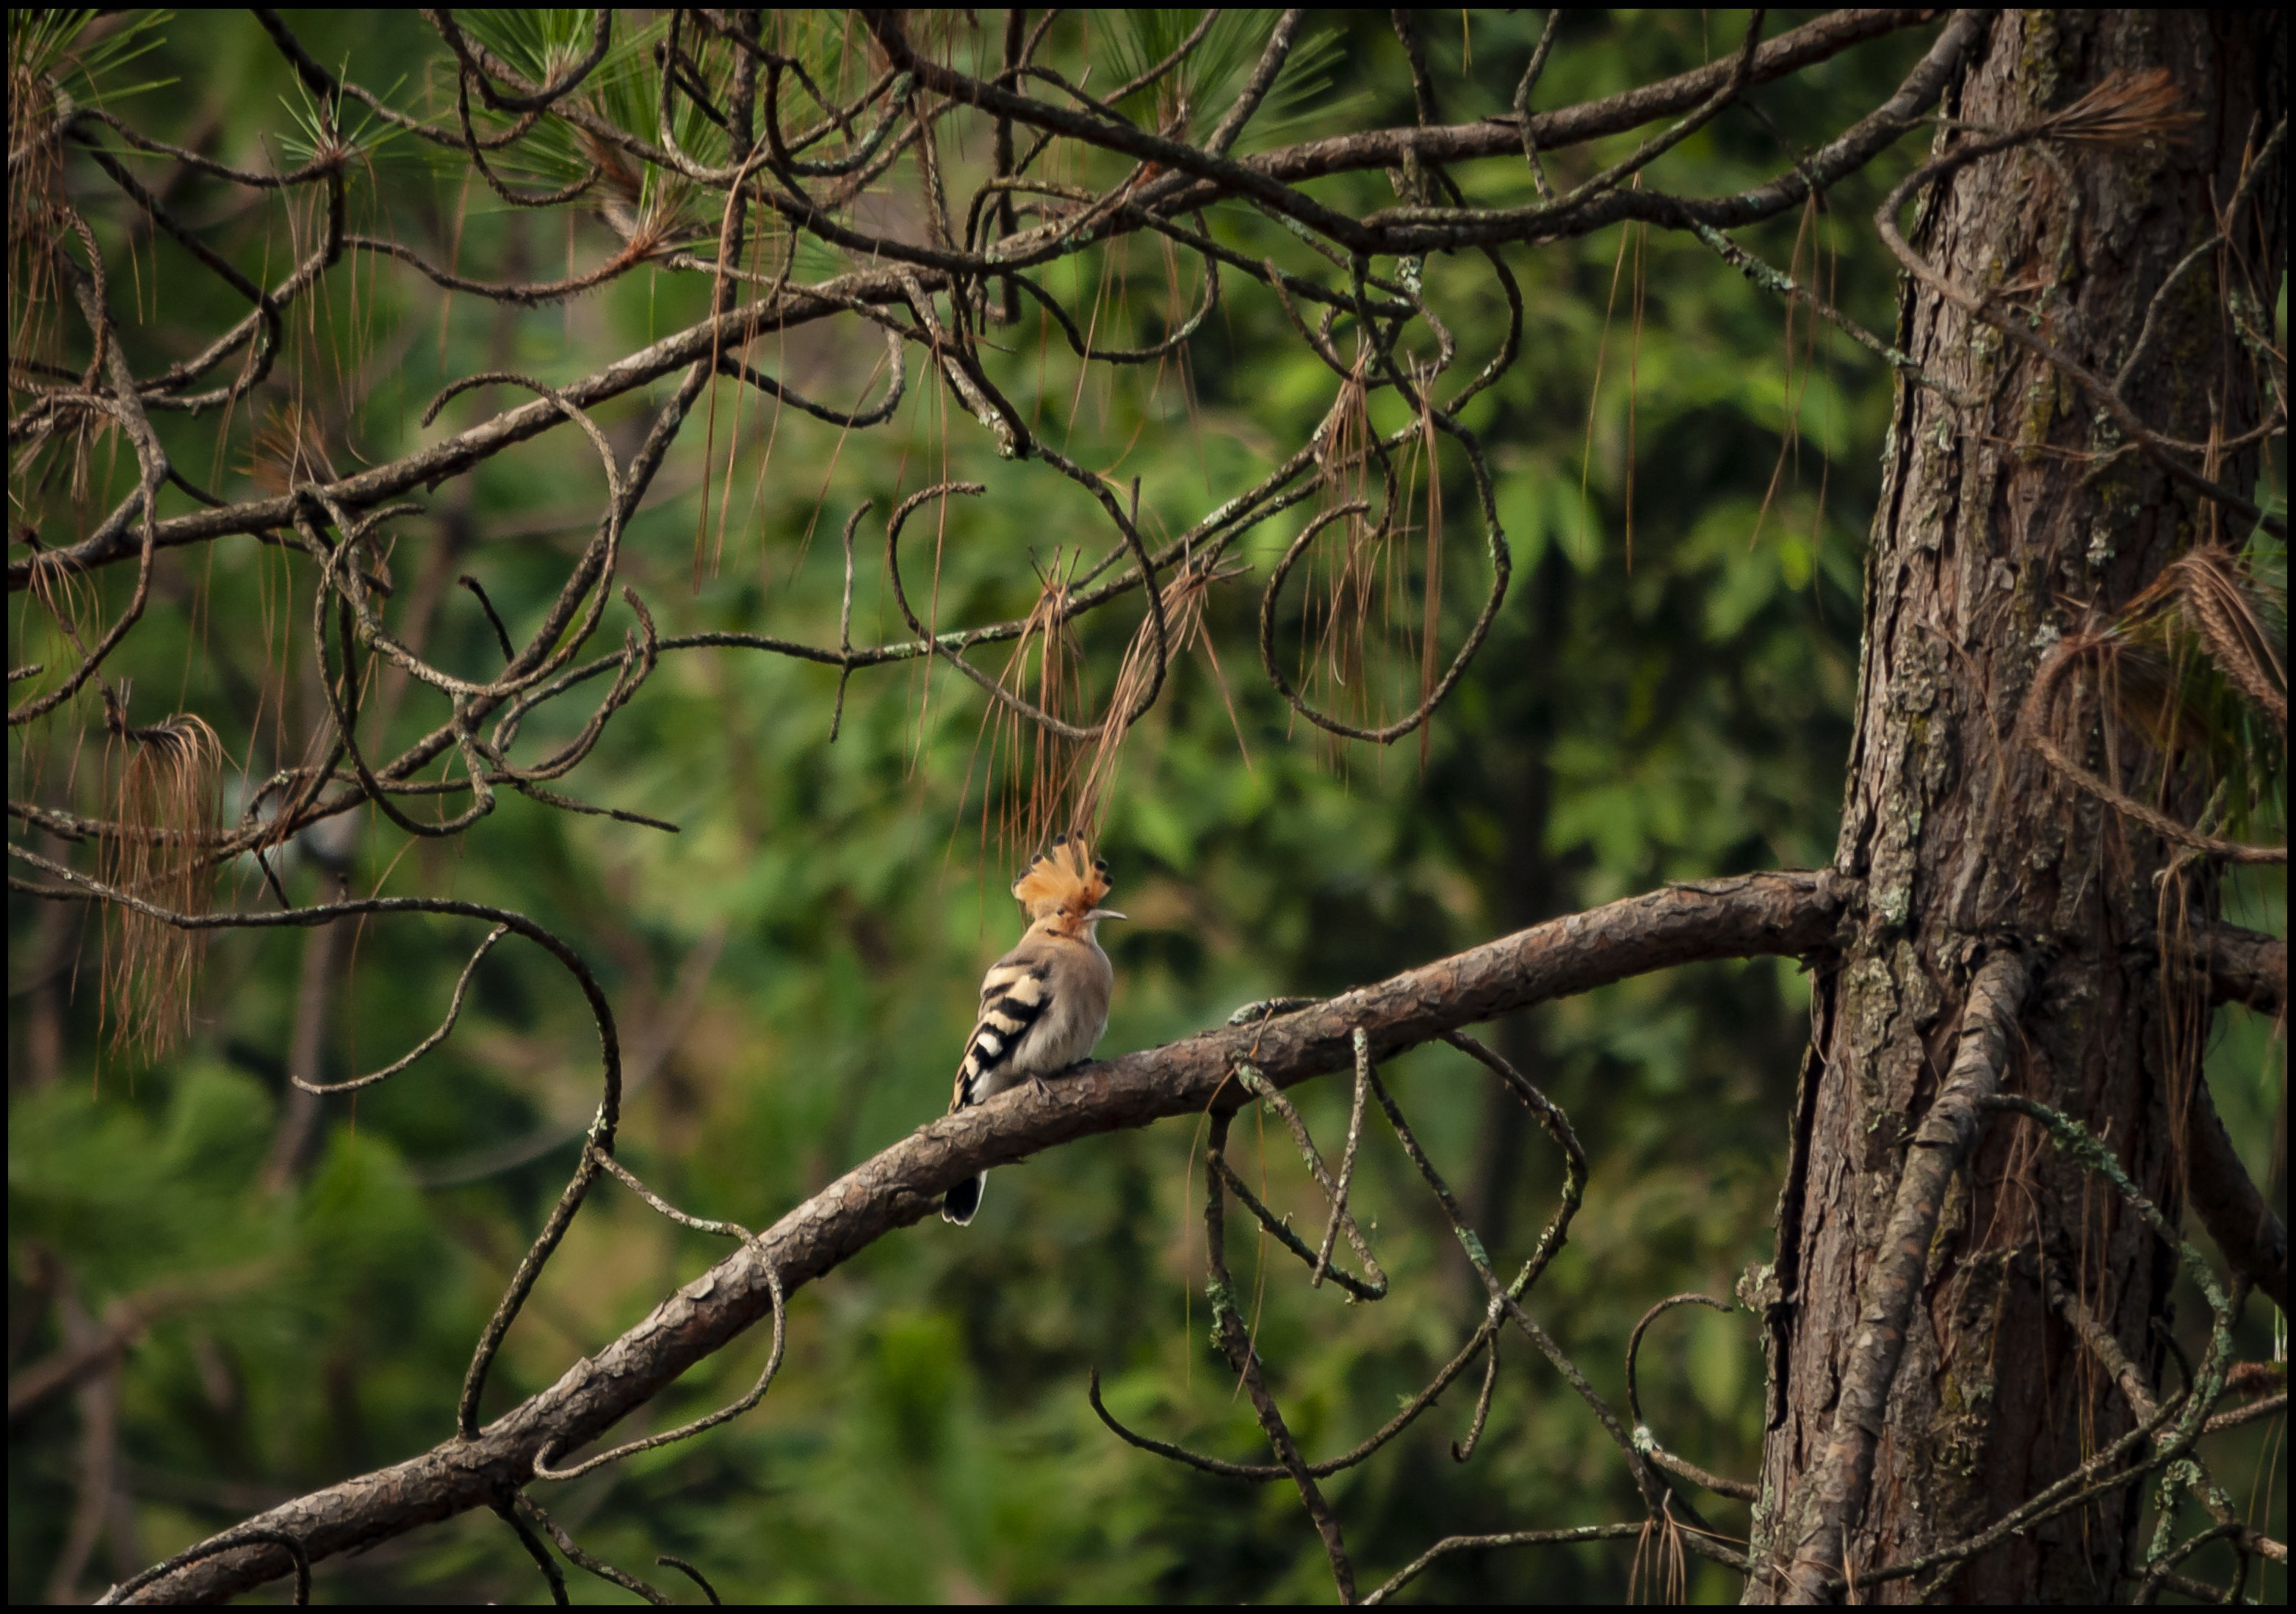 Common Hoopoe, the avifauna of Kumaun Himalayas, Ranikhet, Uttarakhand, India